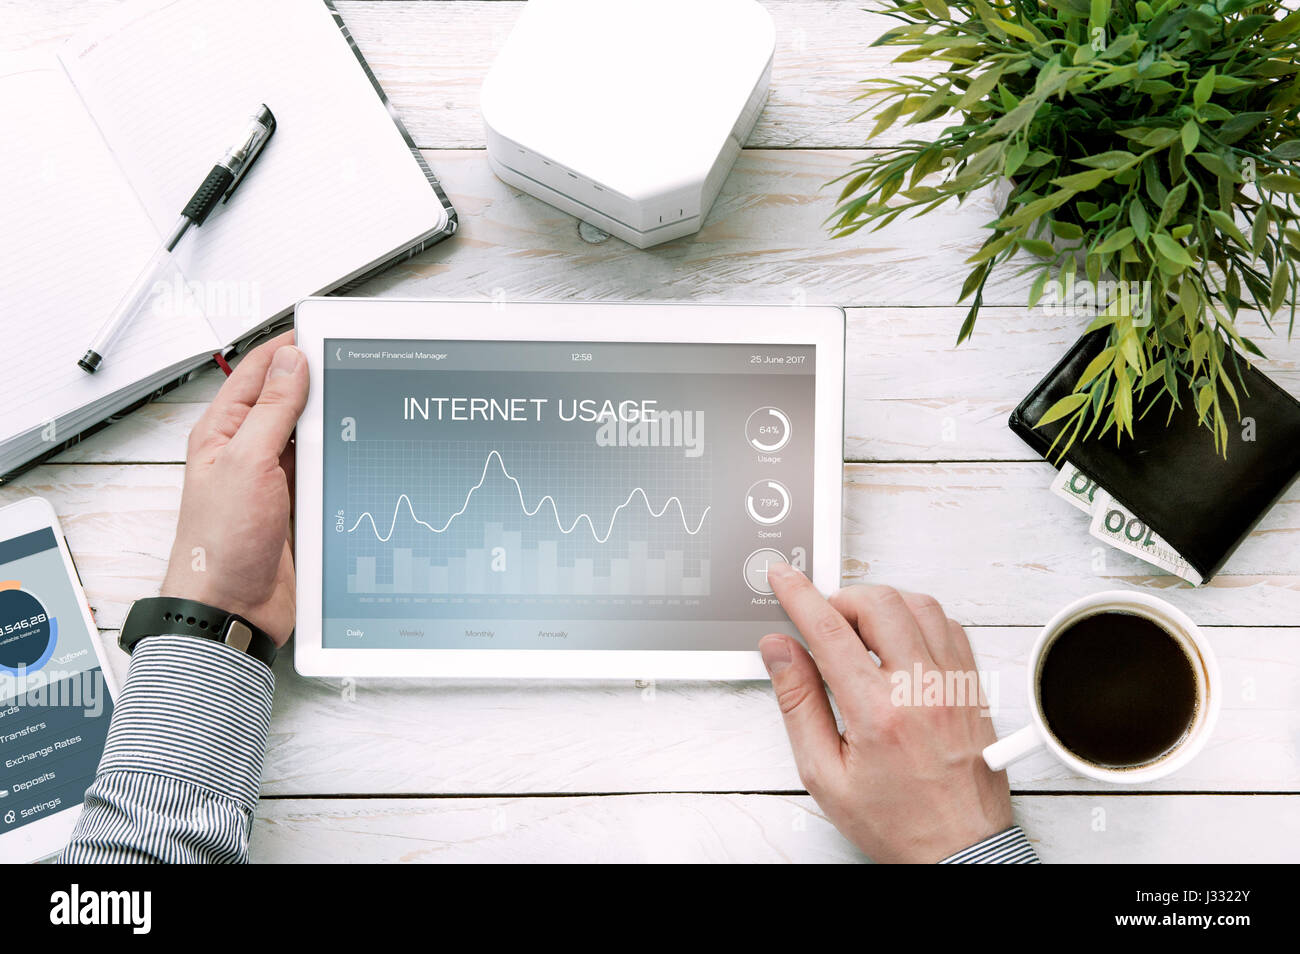 Man holds tablet pc with internet usage application made in graphic program - Stock Image